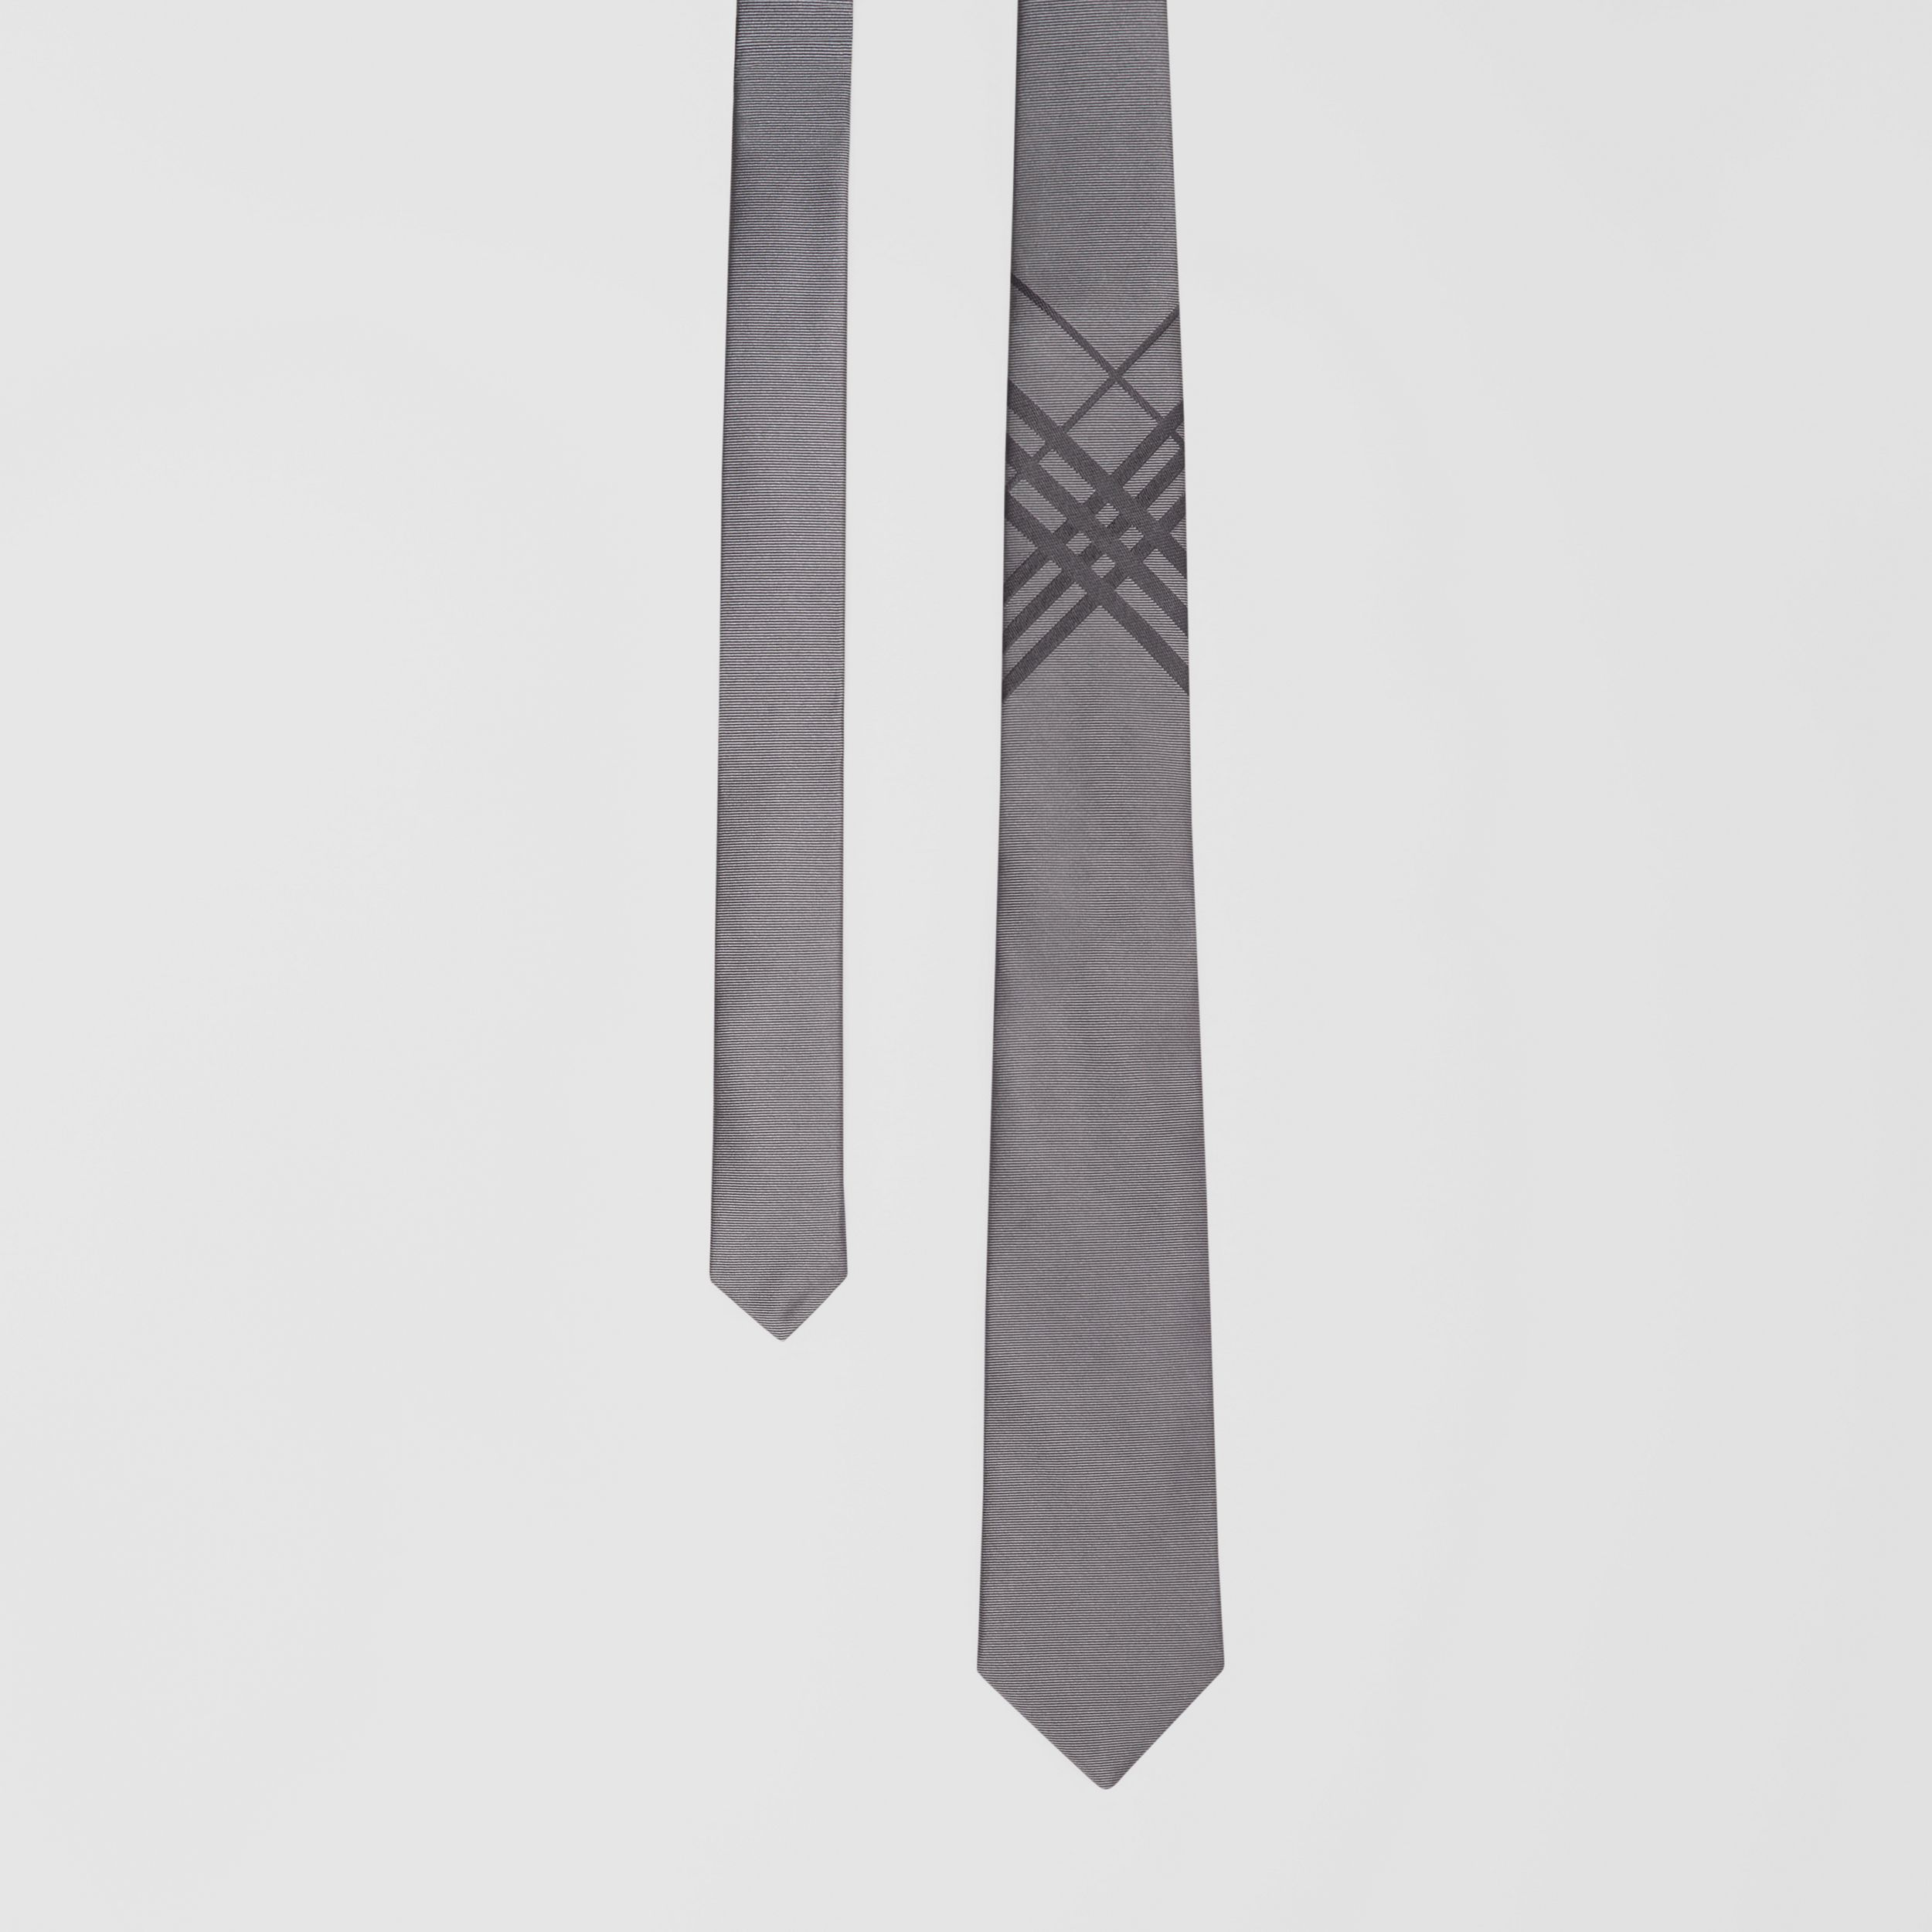 Classic Cut Check Silk Jacquard Tie in Storm Grey - Men | Burberry - 1